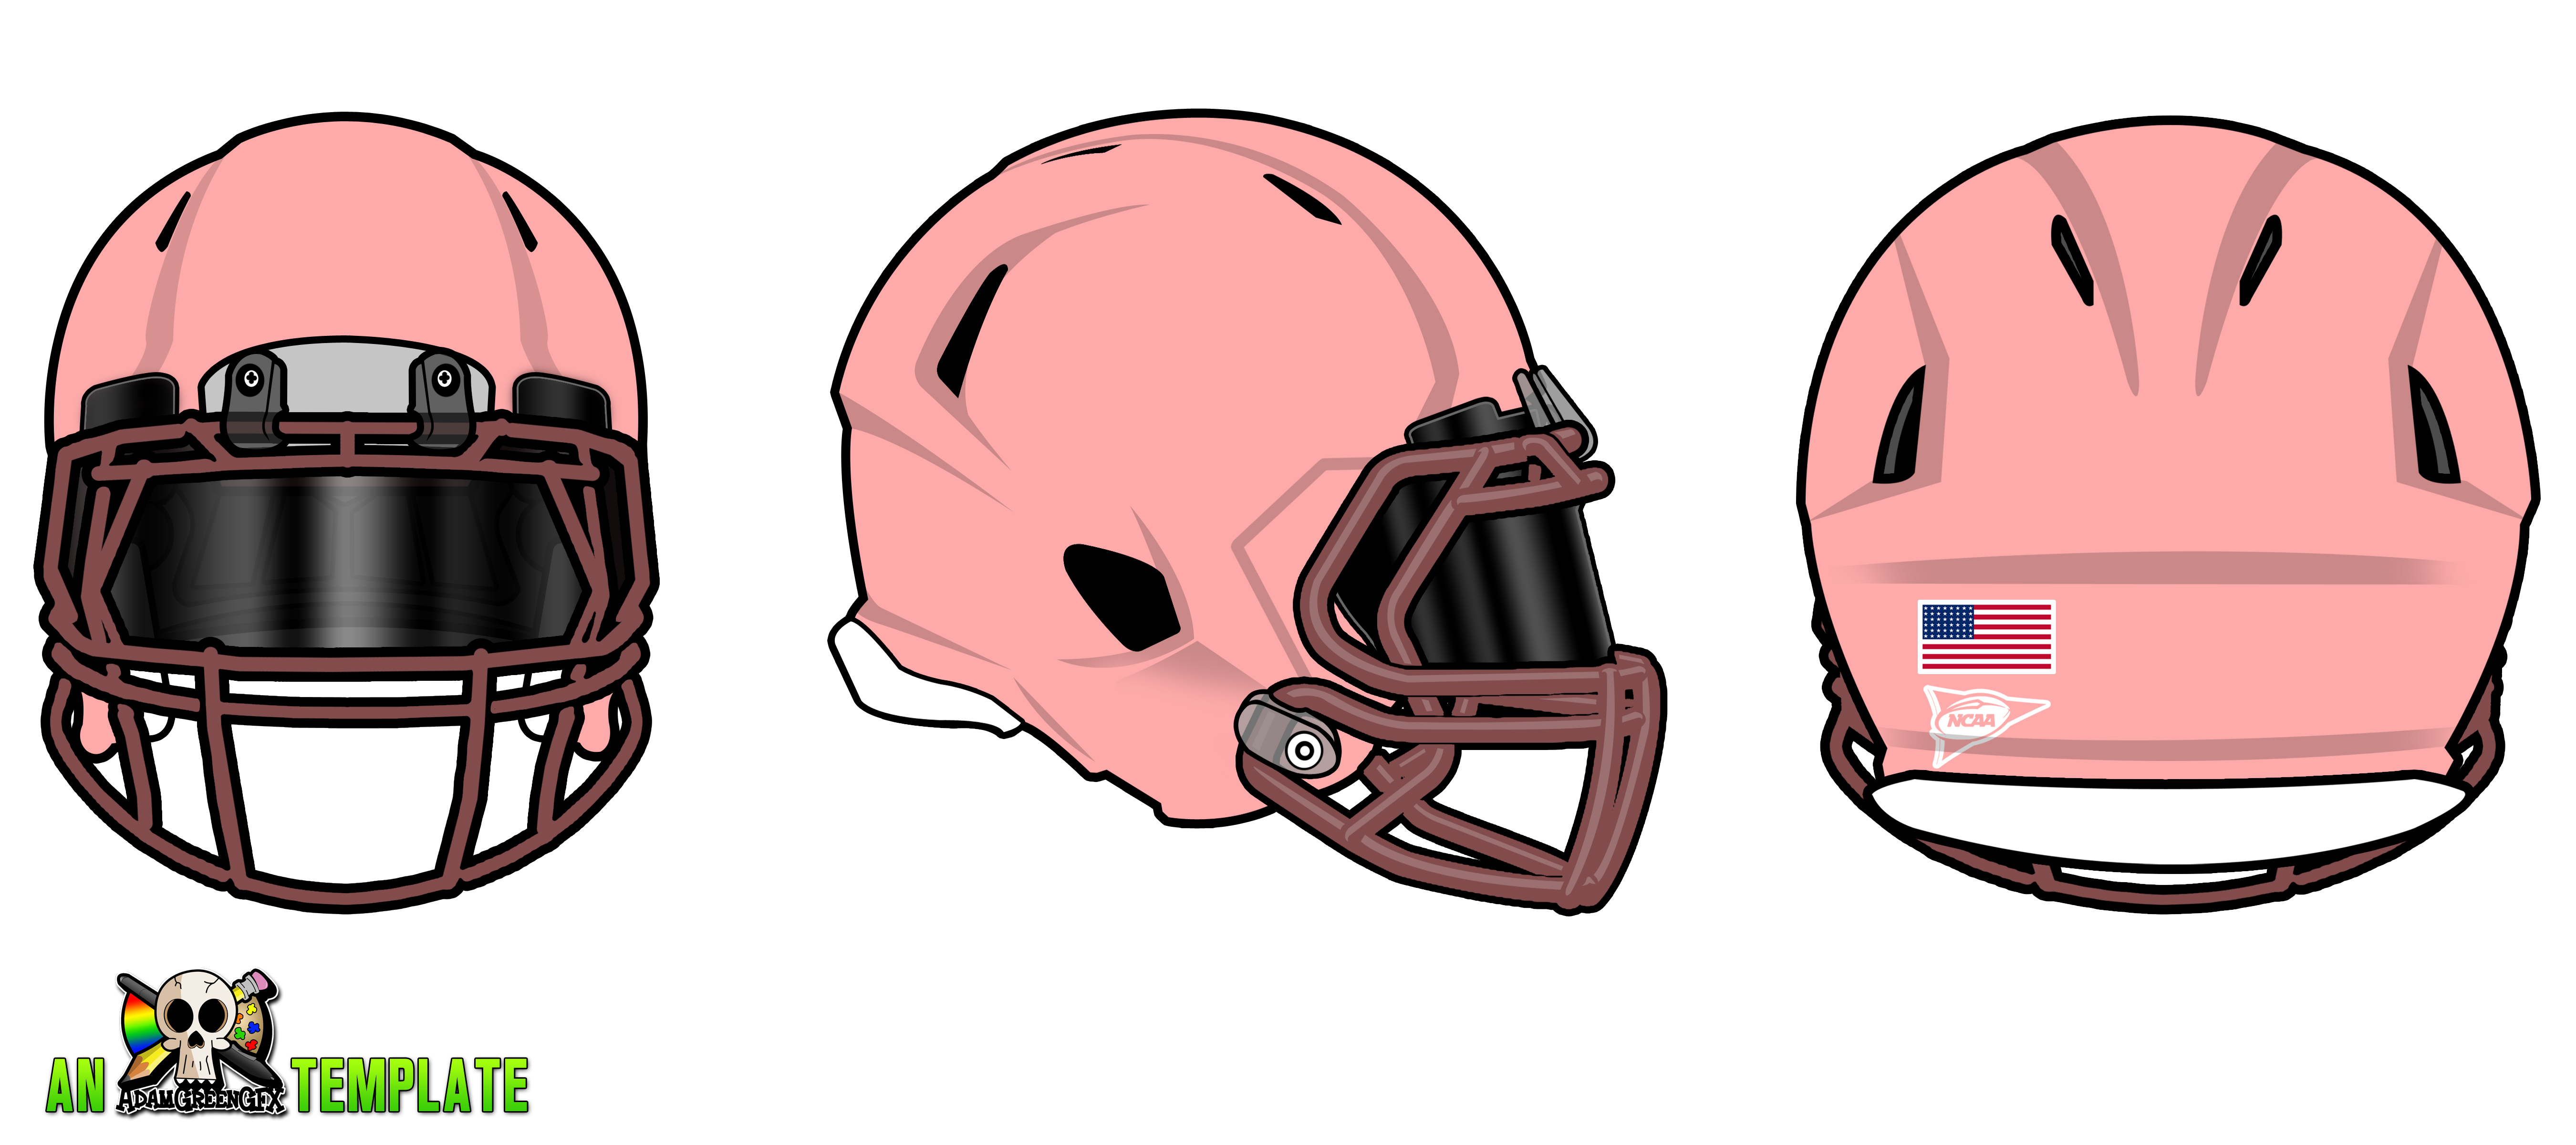 5400x2400 Aggfx Riddell Revo Speed Helmets Template By Adamgreengfx